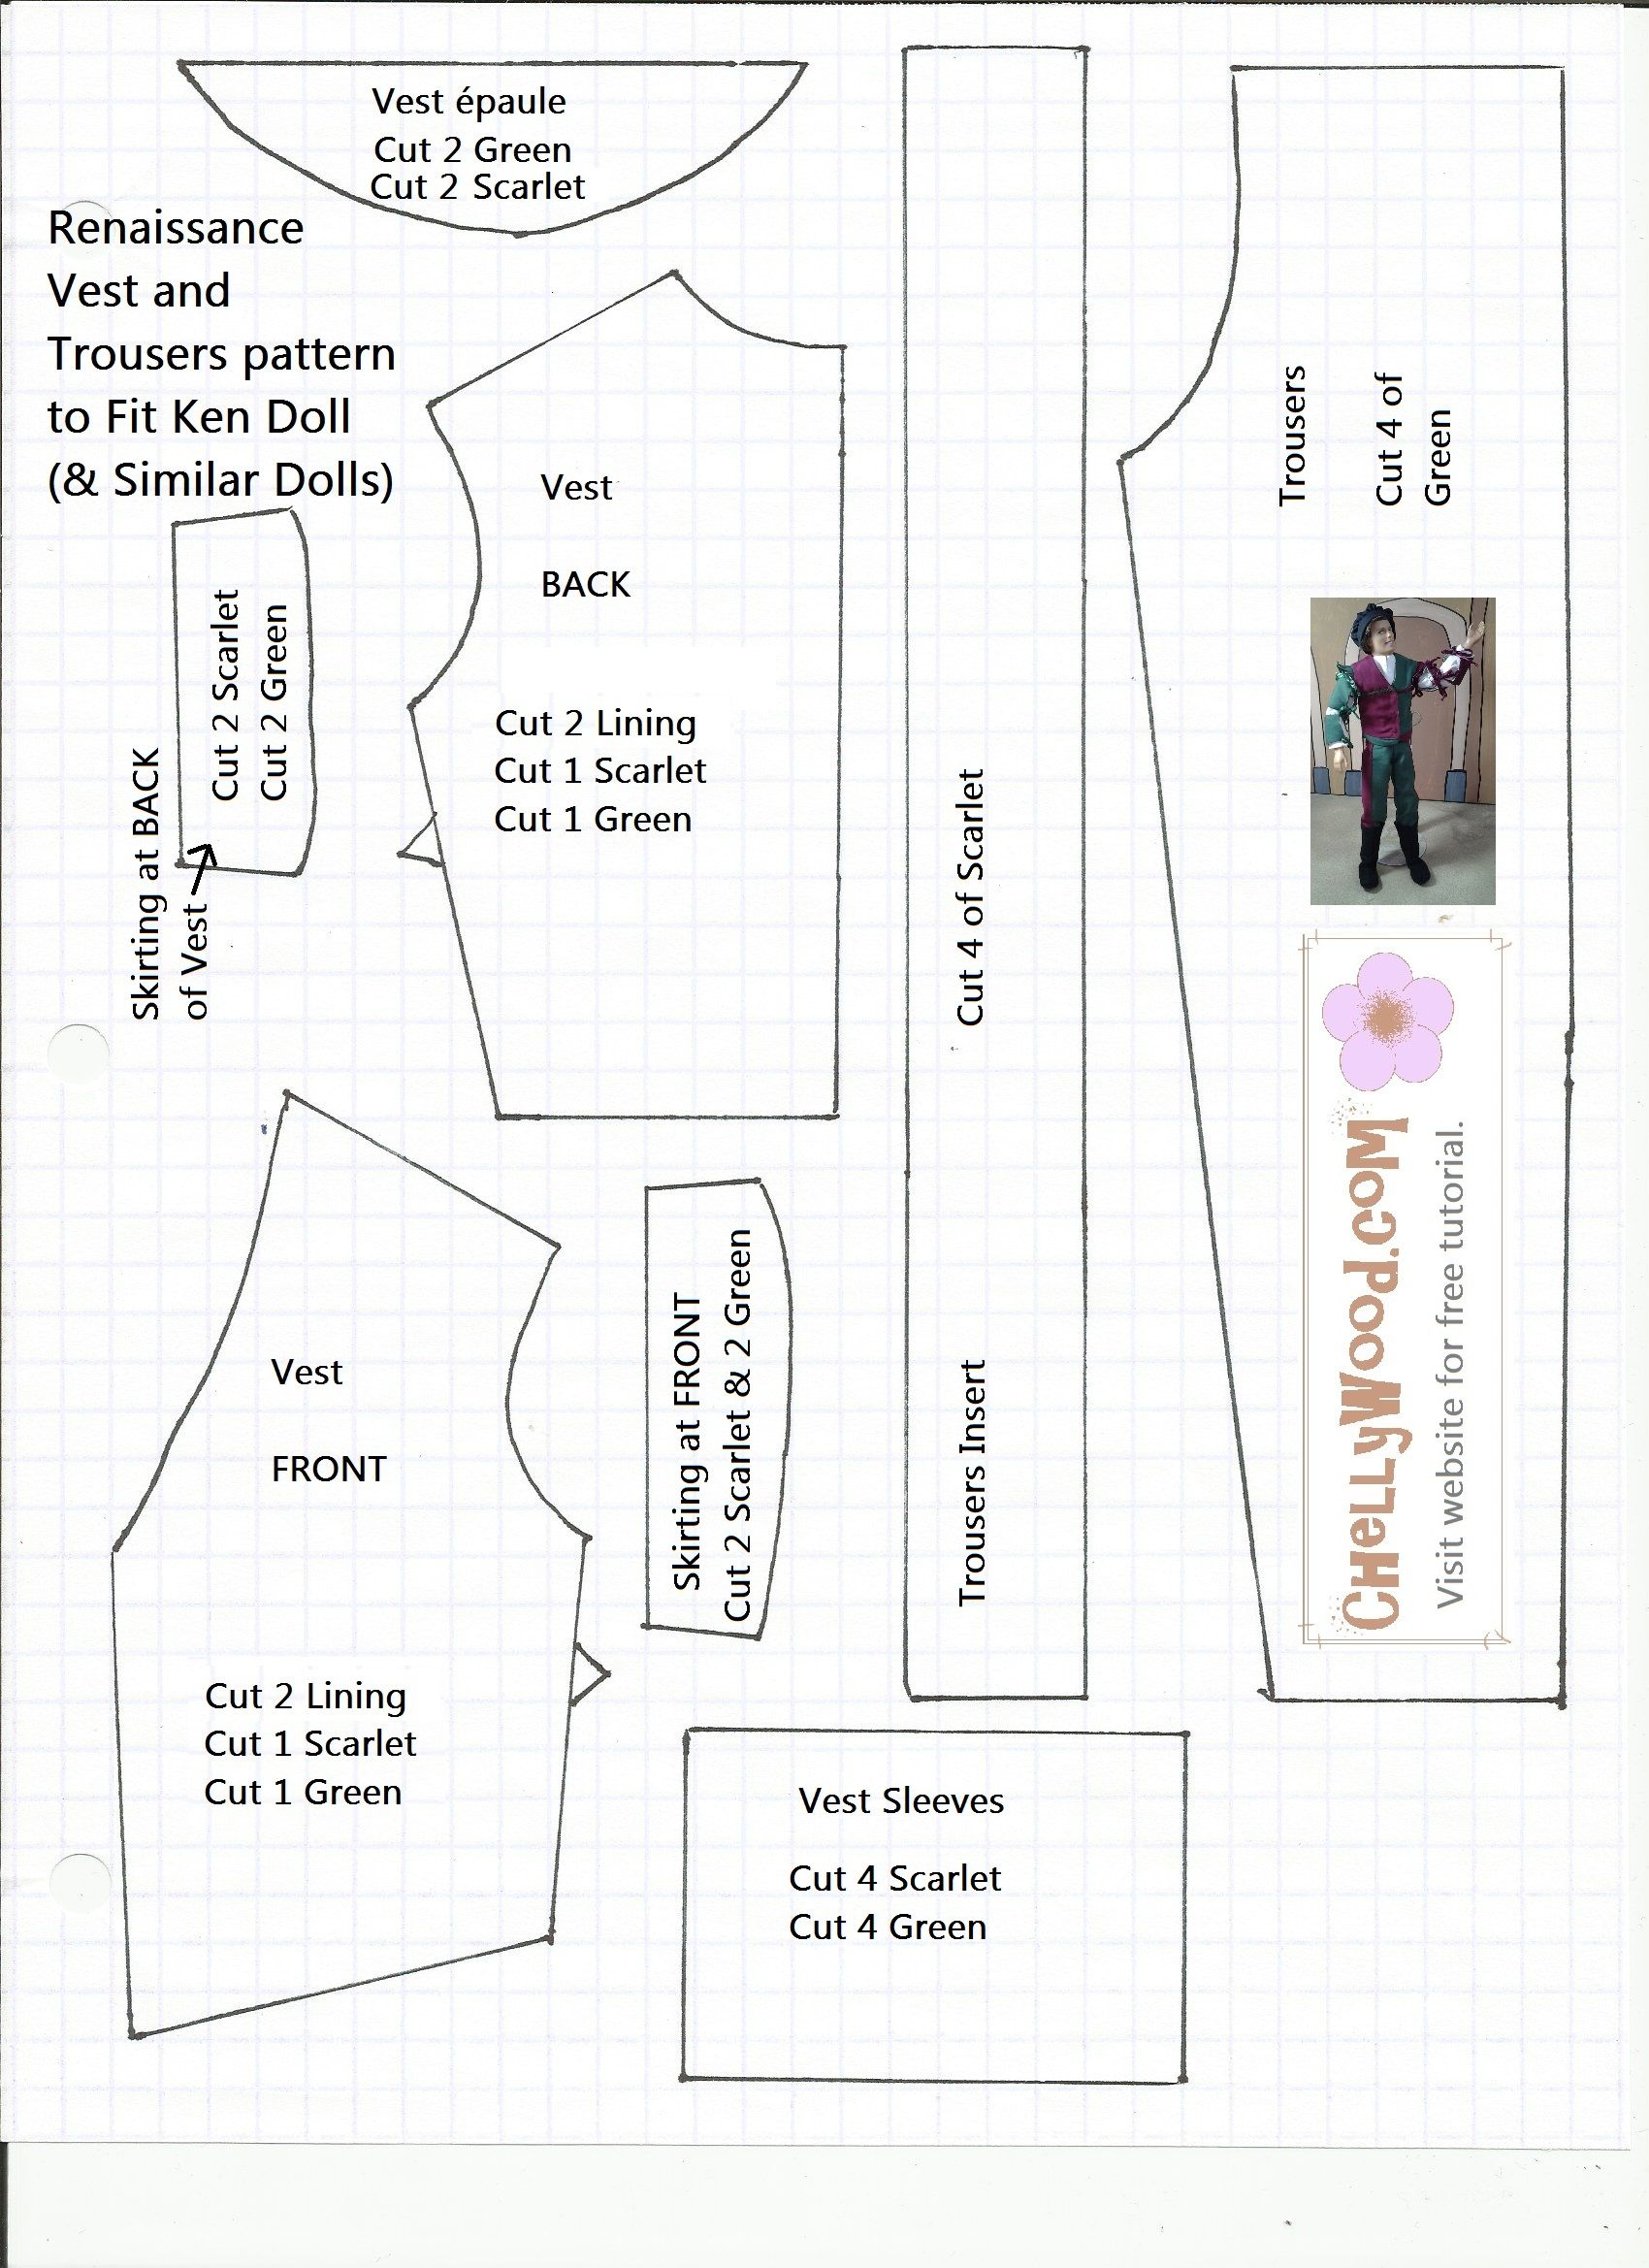 This is a free pattern for a Renaissance doublet and